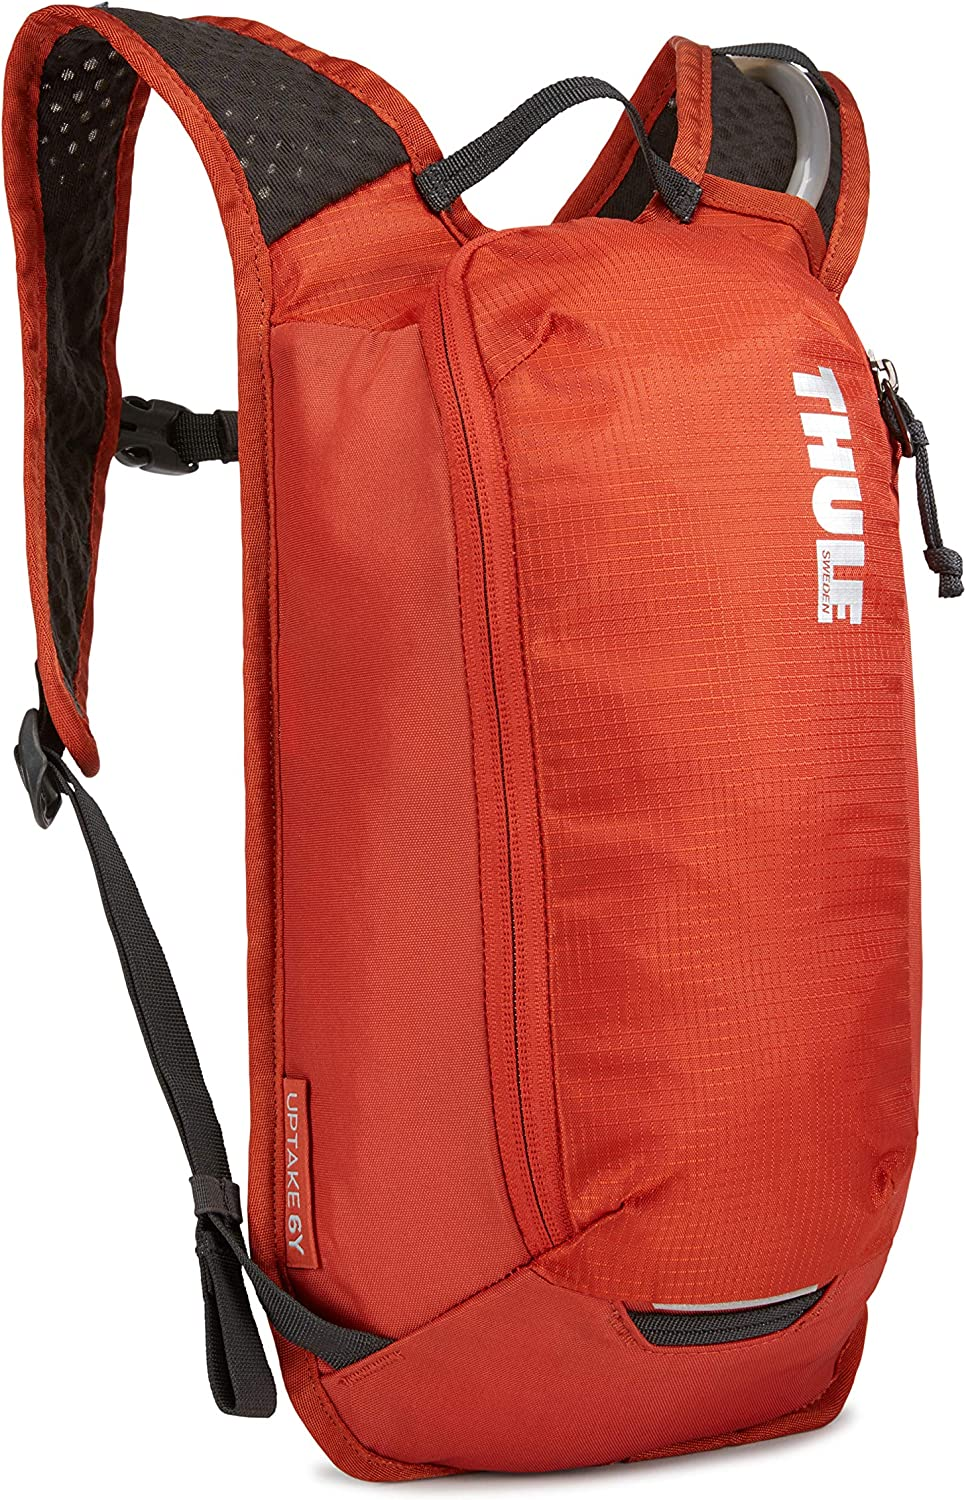 Thule Popular brand in the world Uptake Pack Limited price sale Hydration